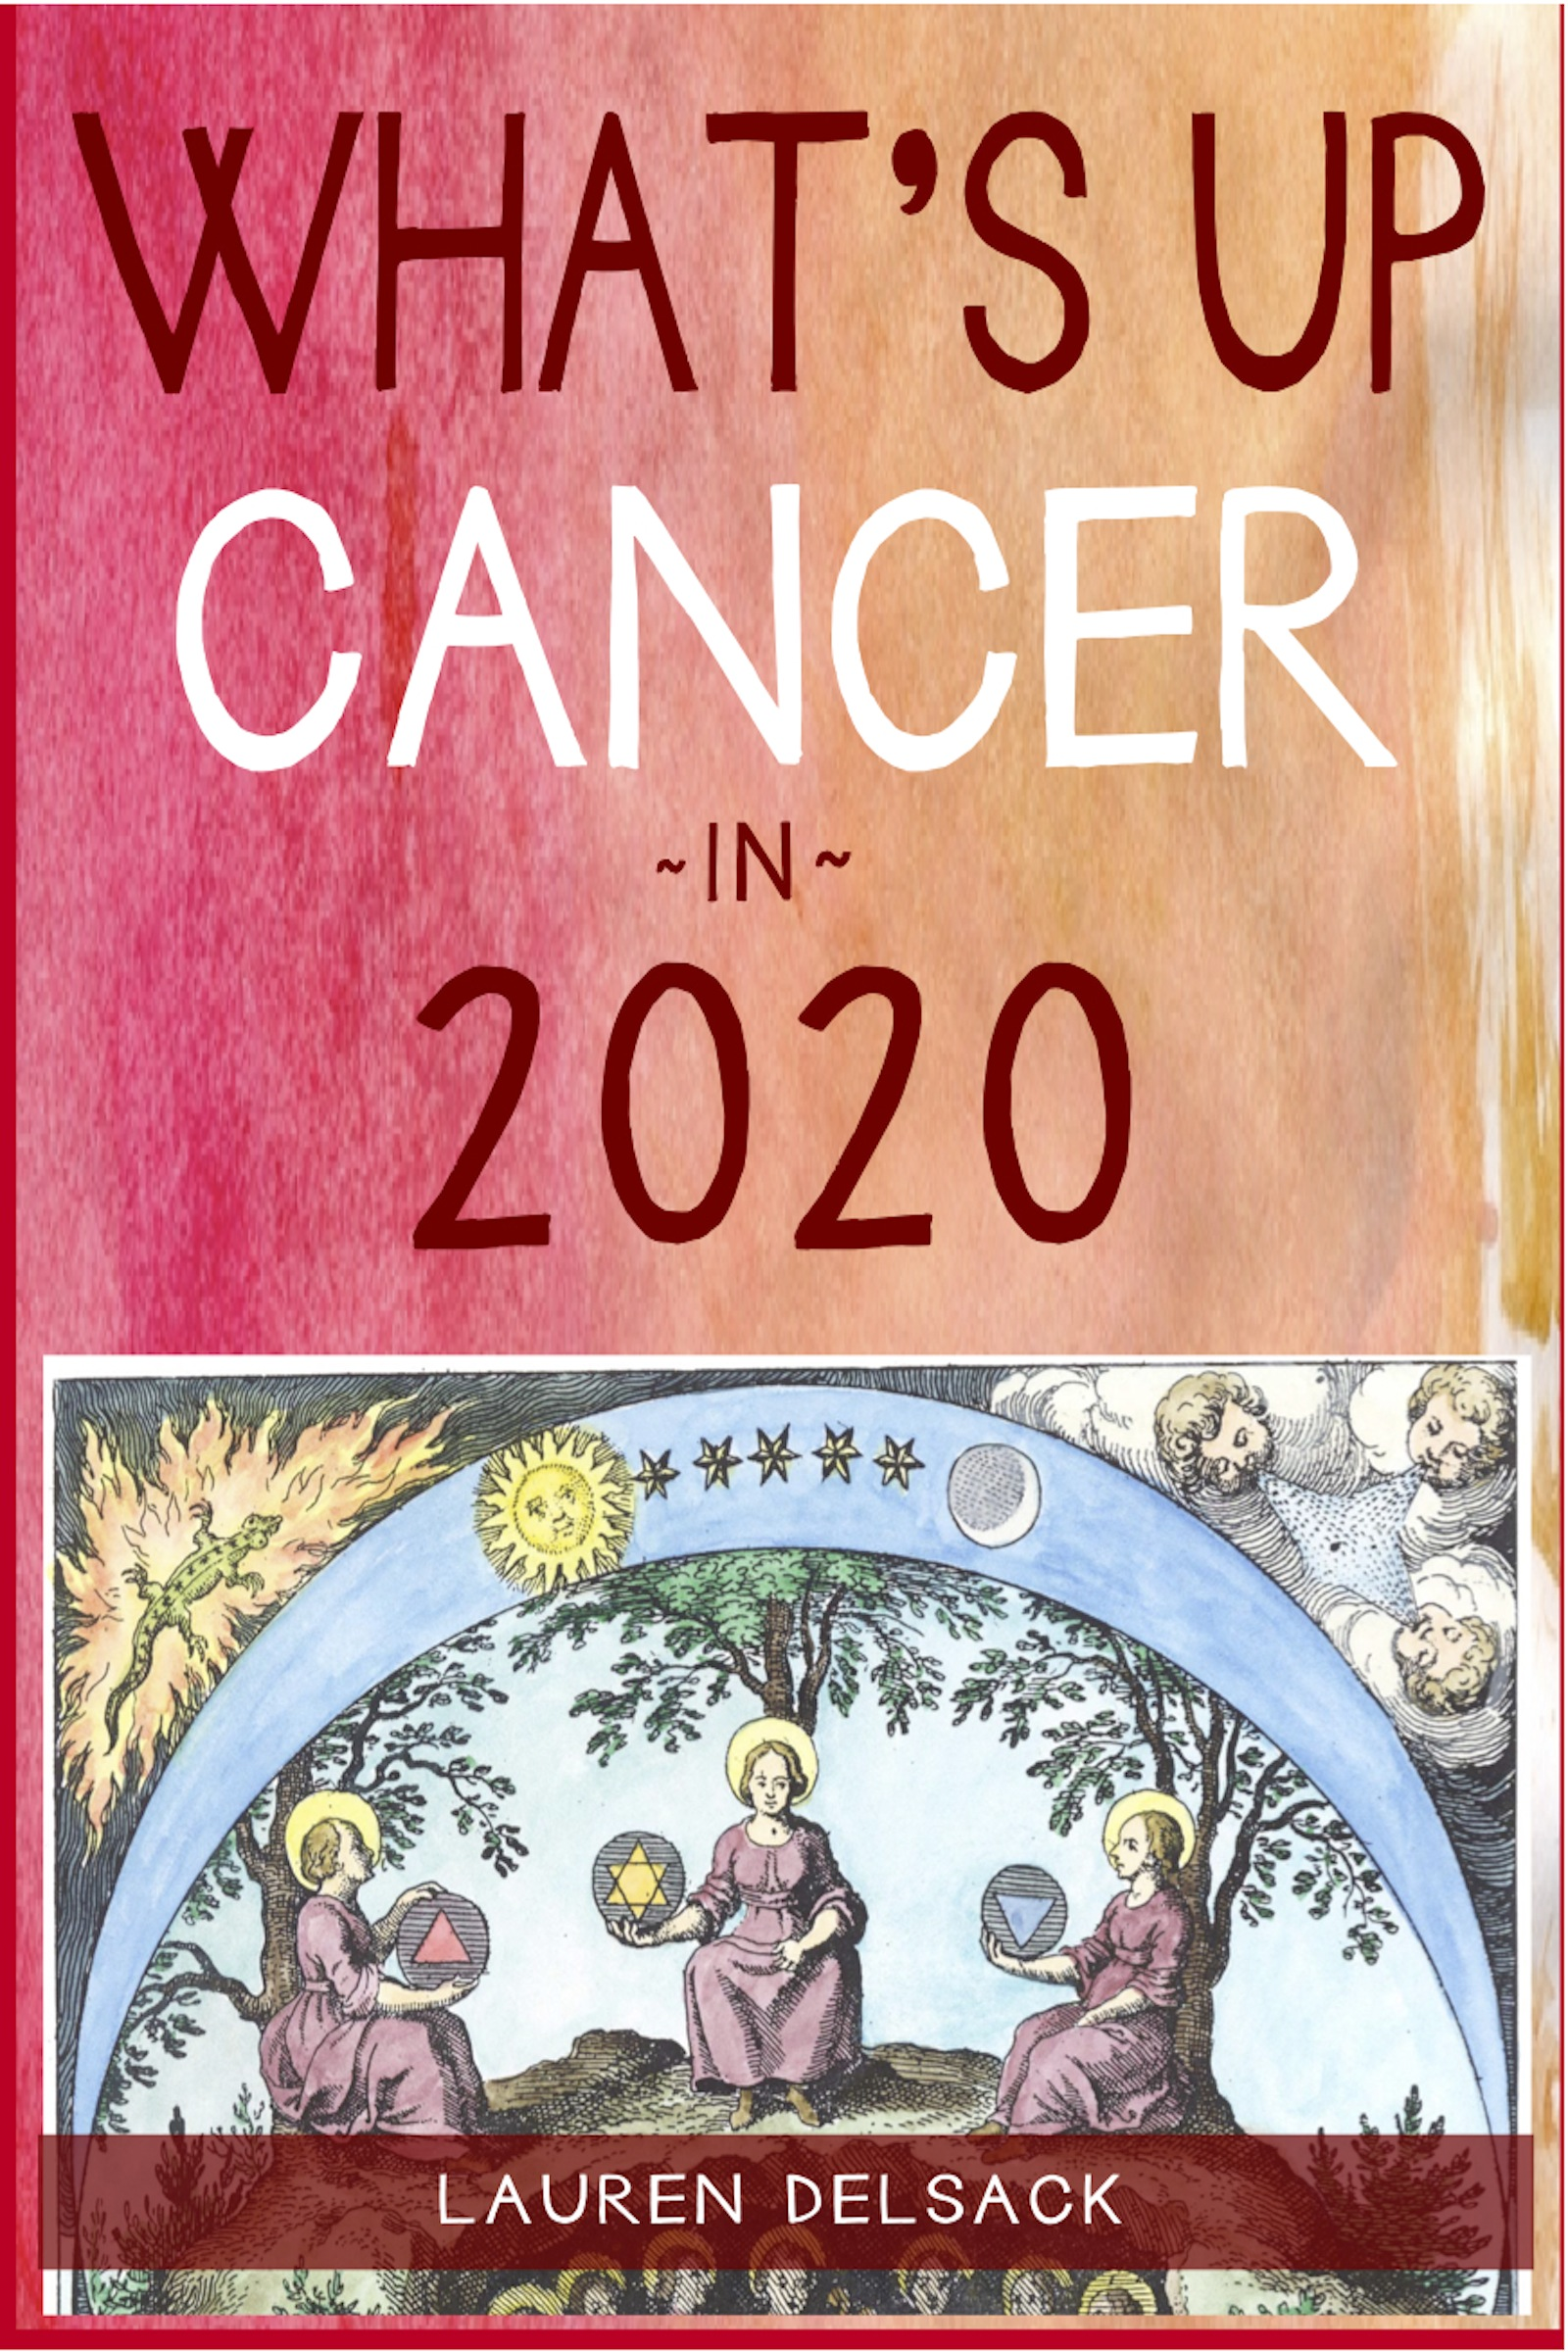 What's Up Cancer in 2020, an Ebook by Lauren Delsack